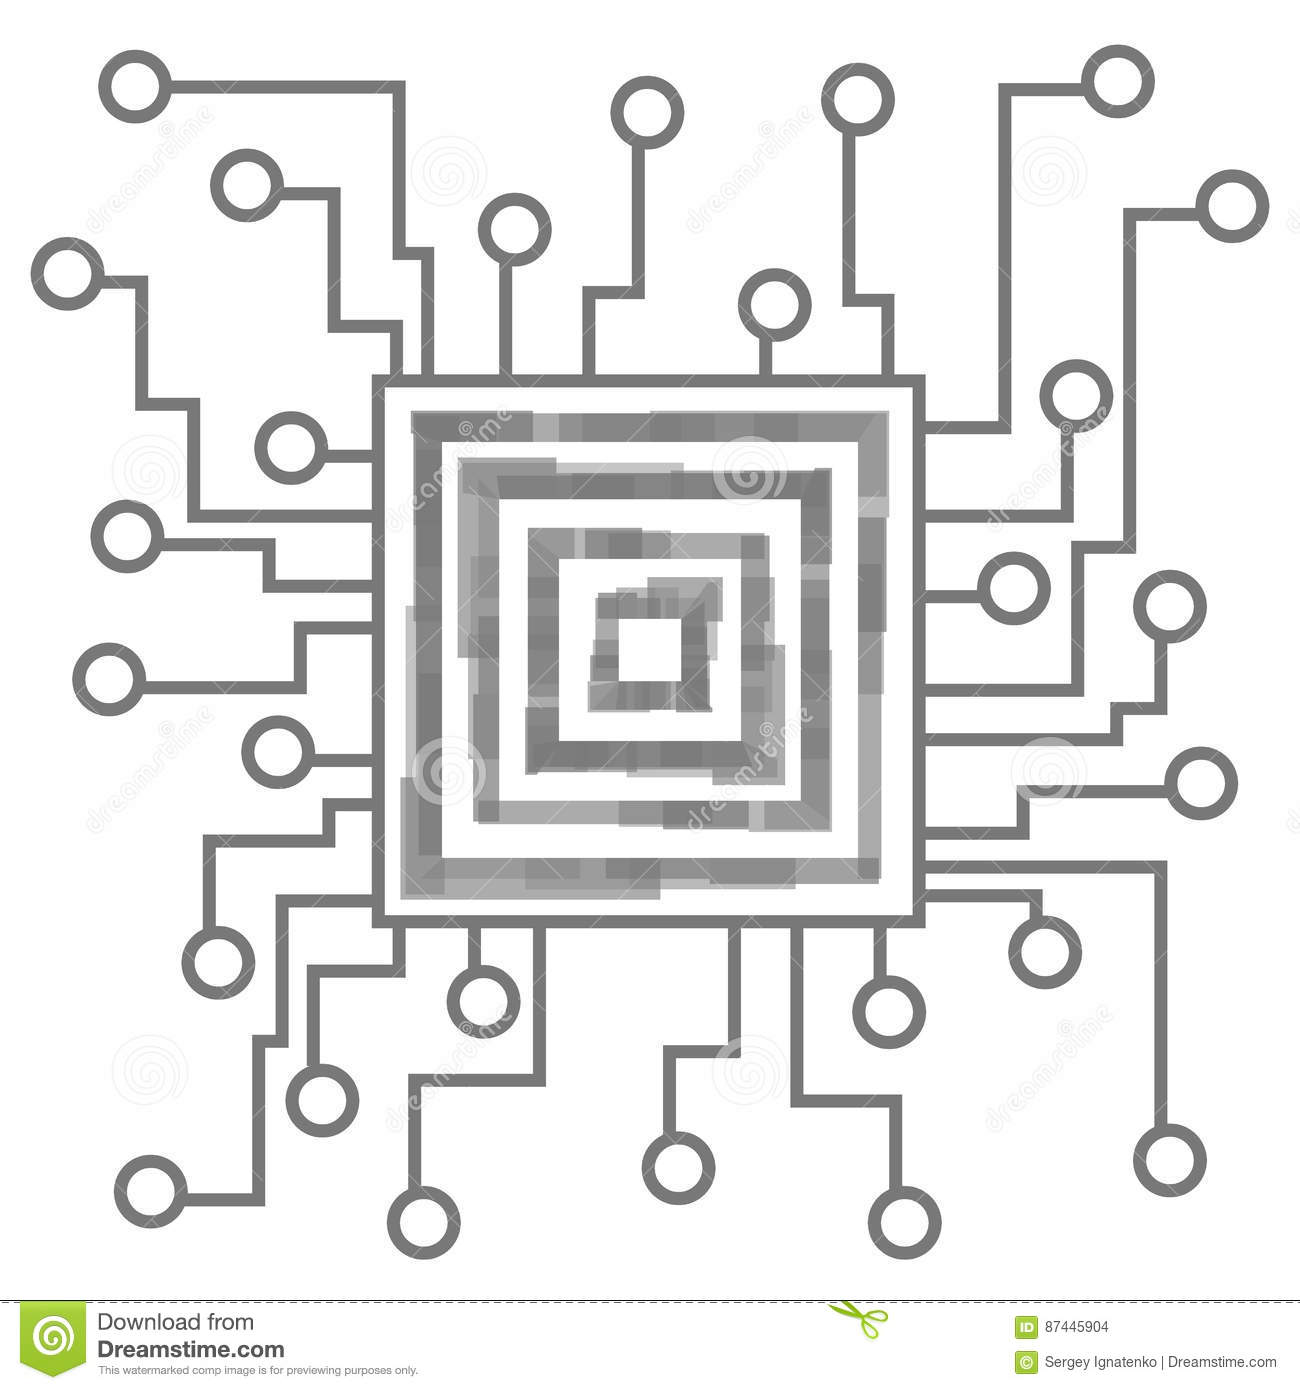 circuit board on white background  processor and chip  engineering and tech  motherboard and